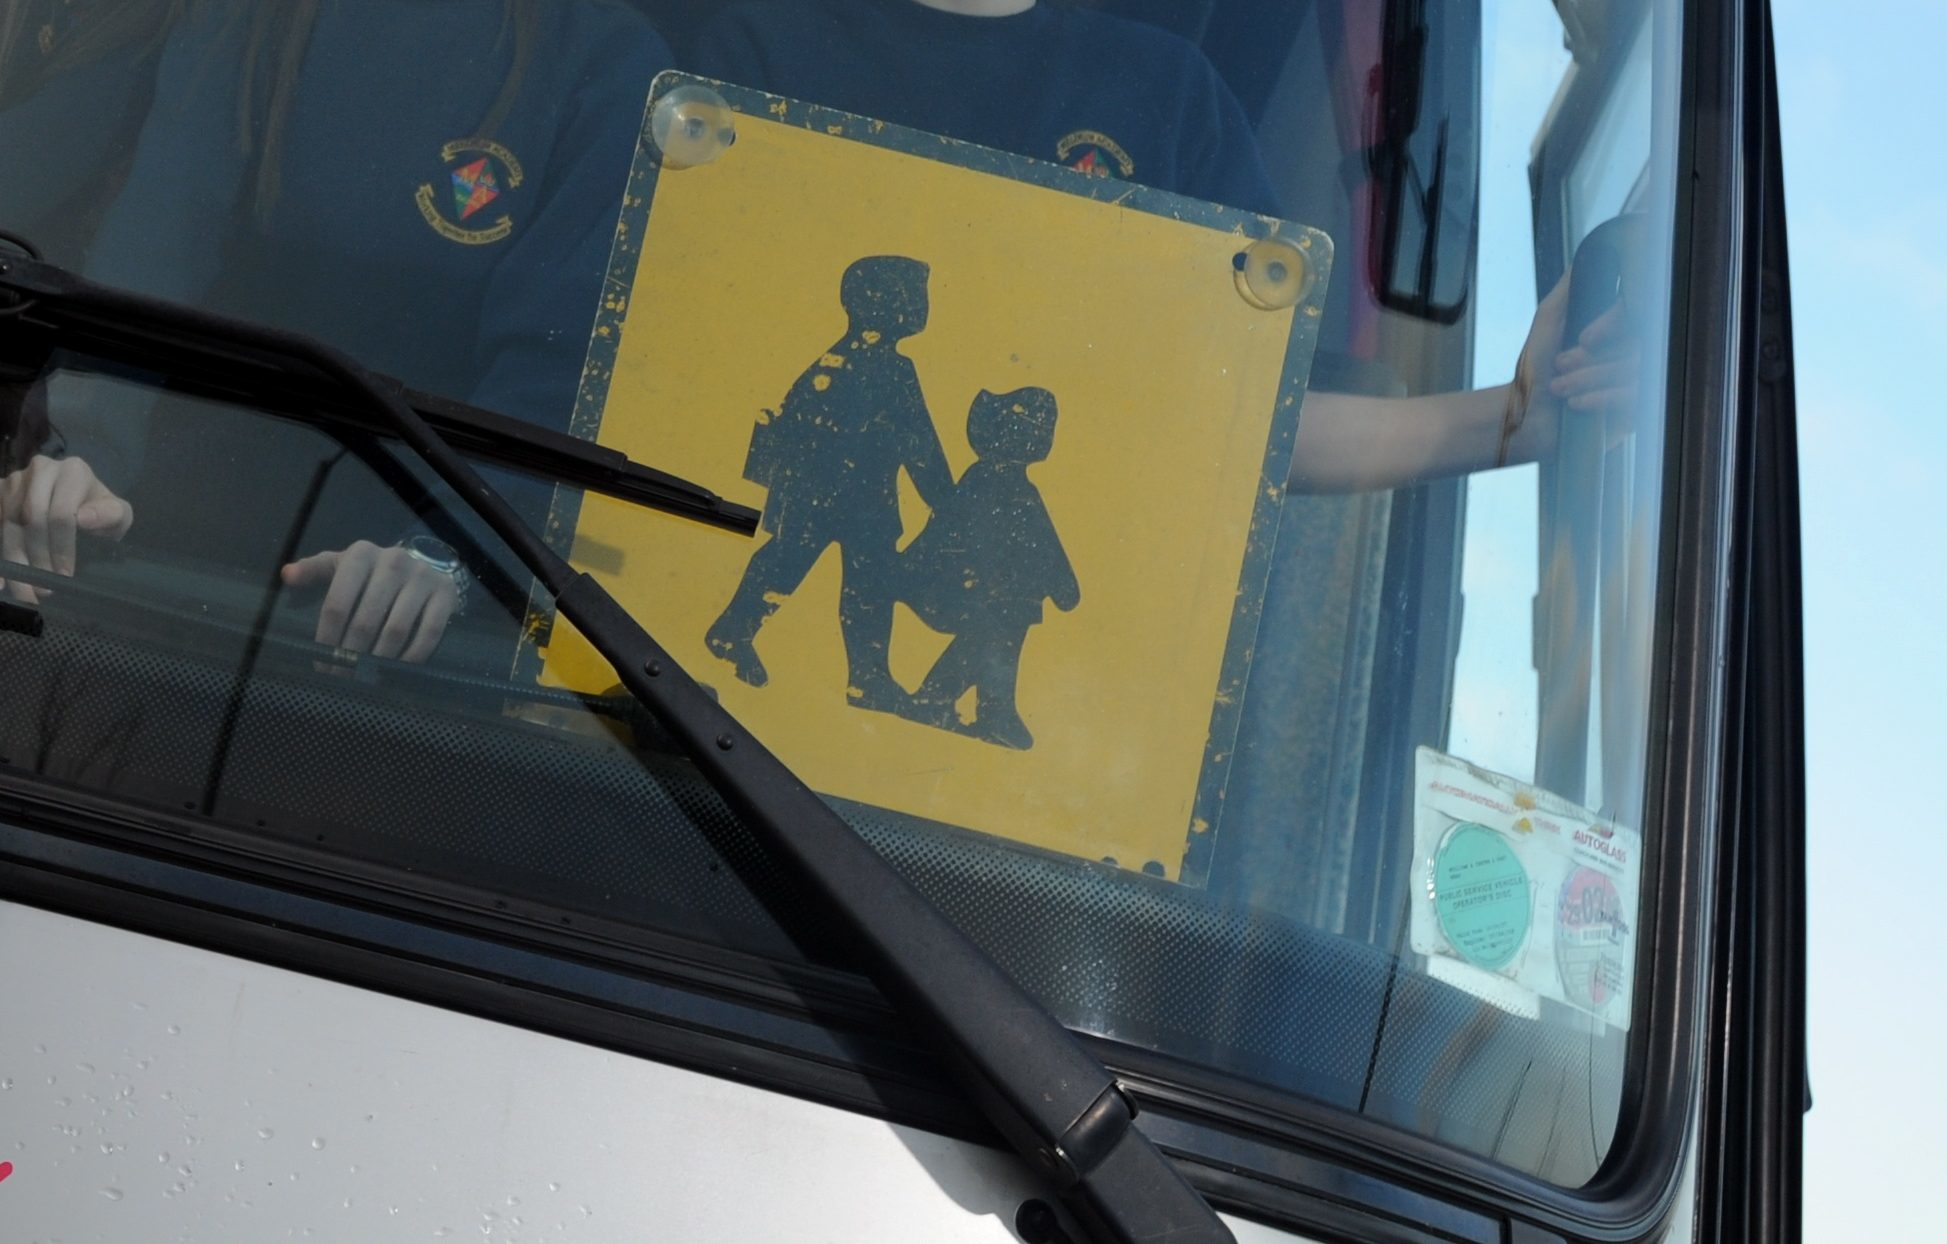 Fife Council currently gives free passes to pupils who live within the nationally agreed limits for walking to school.